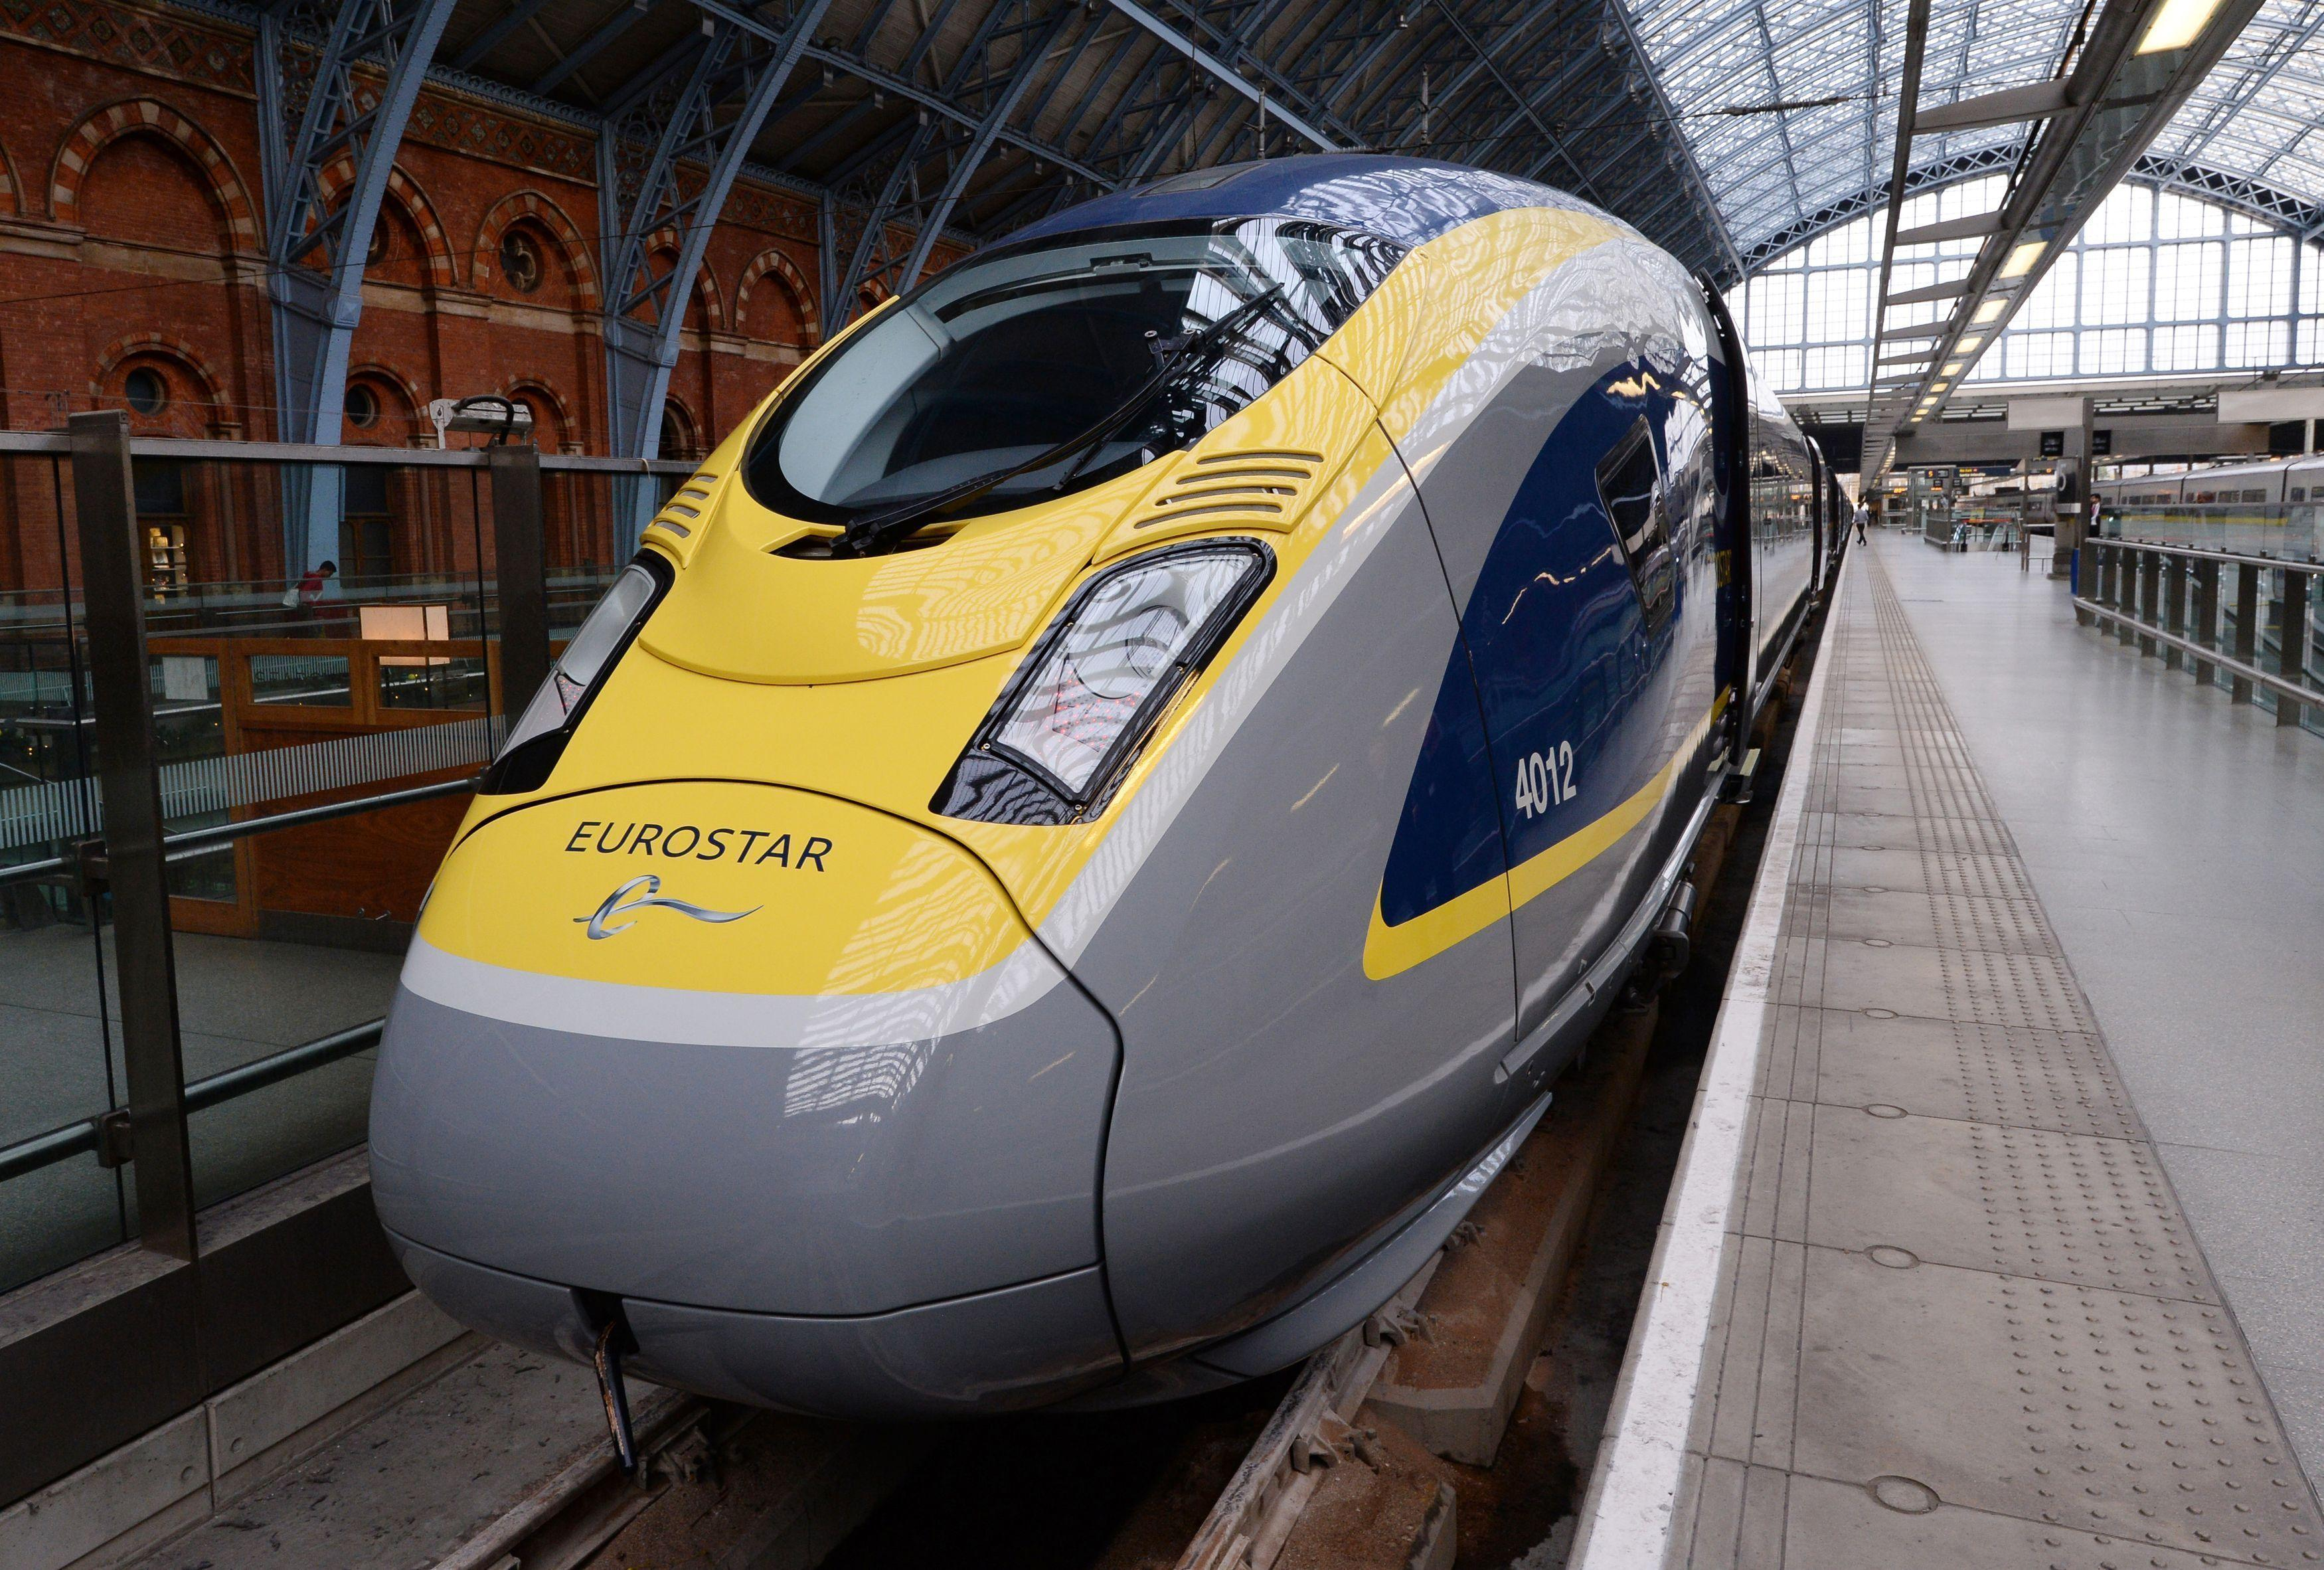 Paris Train Eurostar Releases Cheap Disneyland Paris Train Tickets From 38